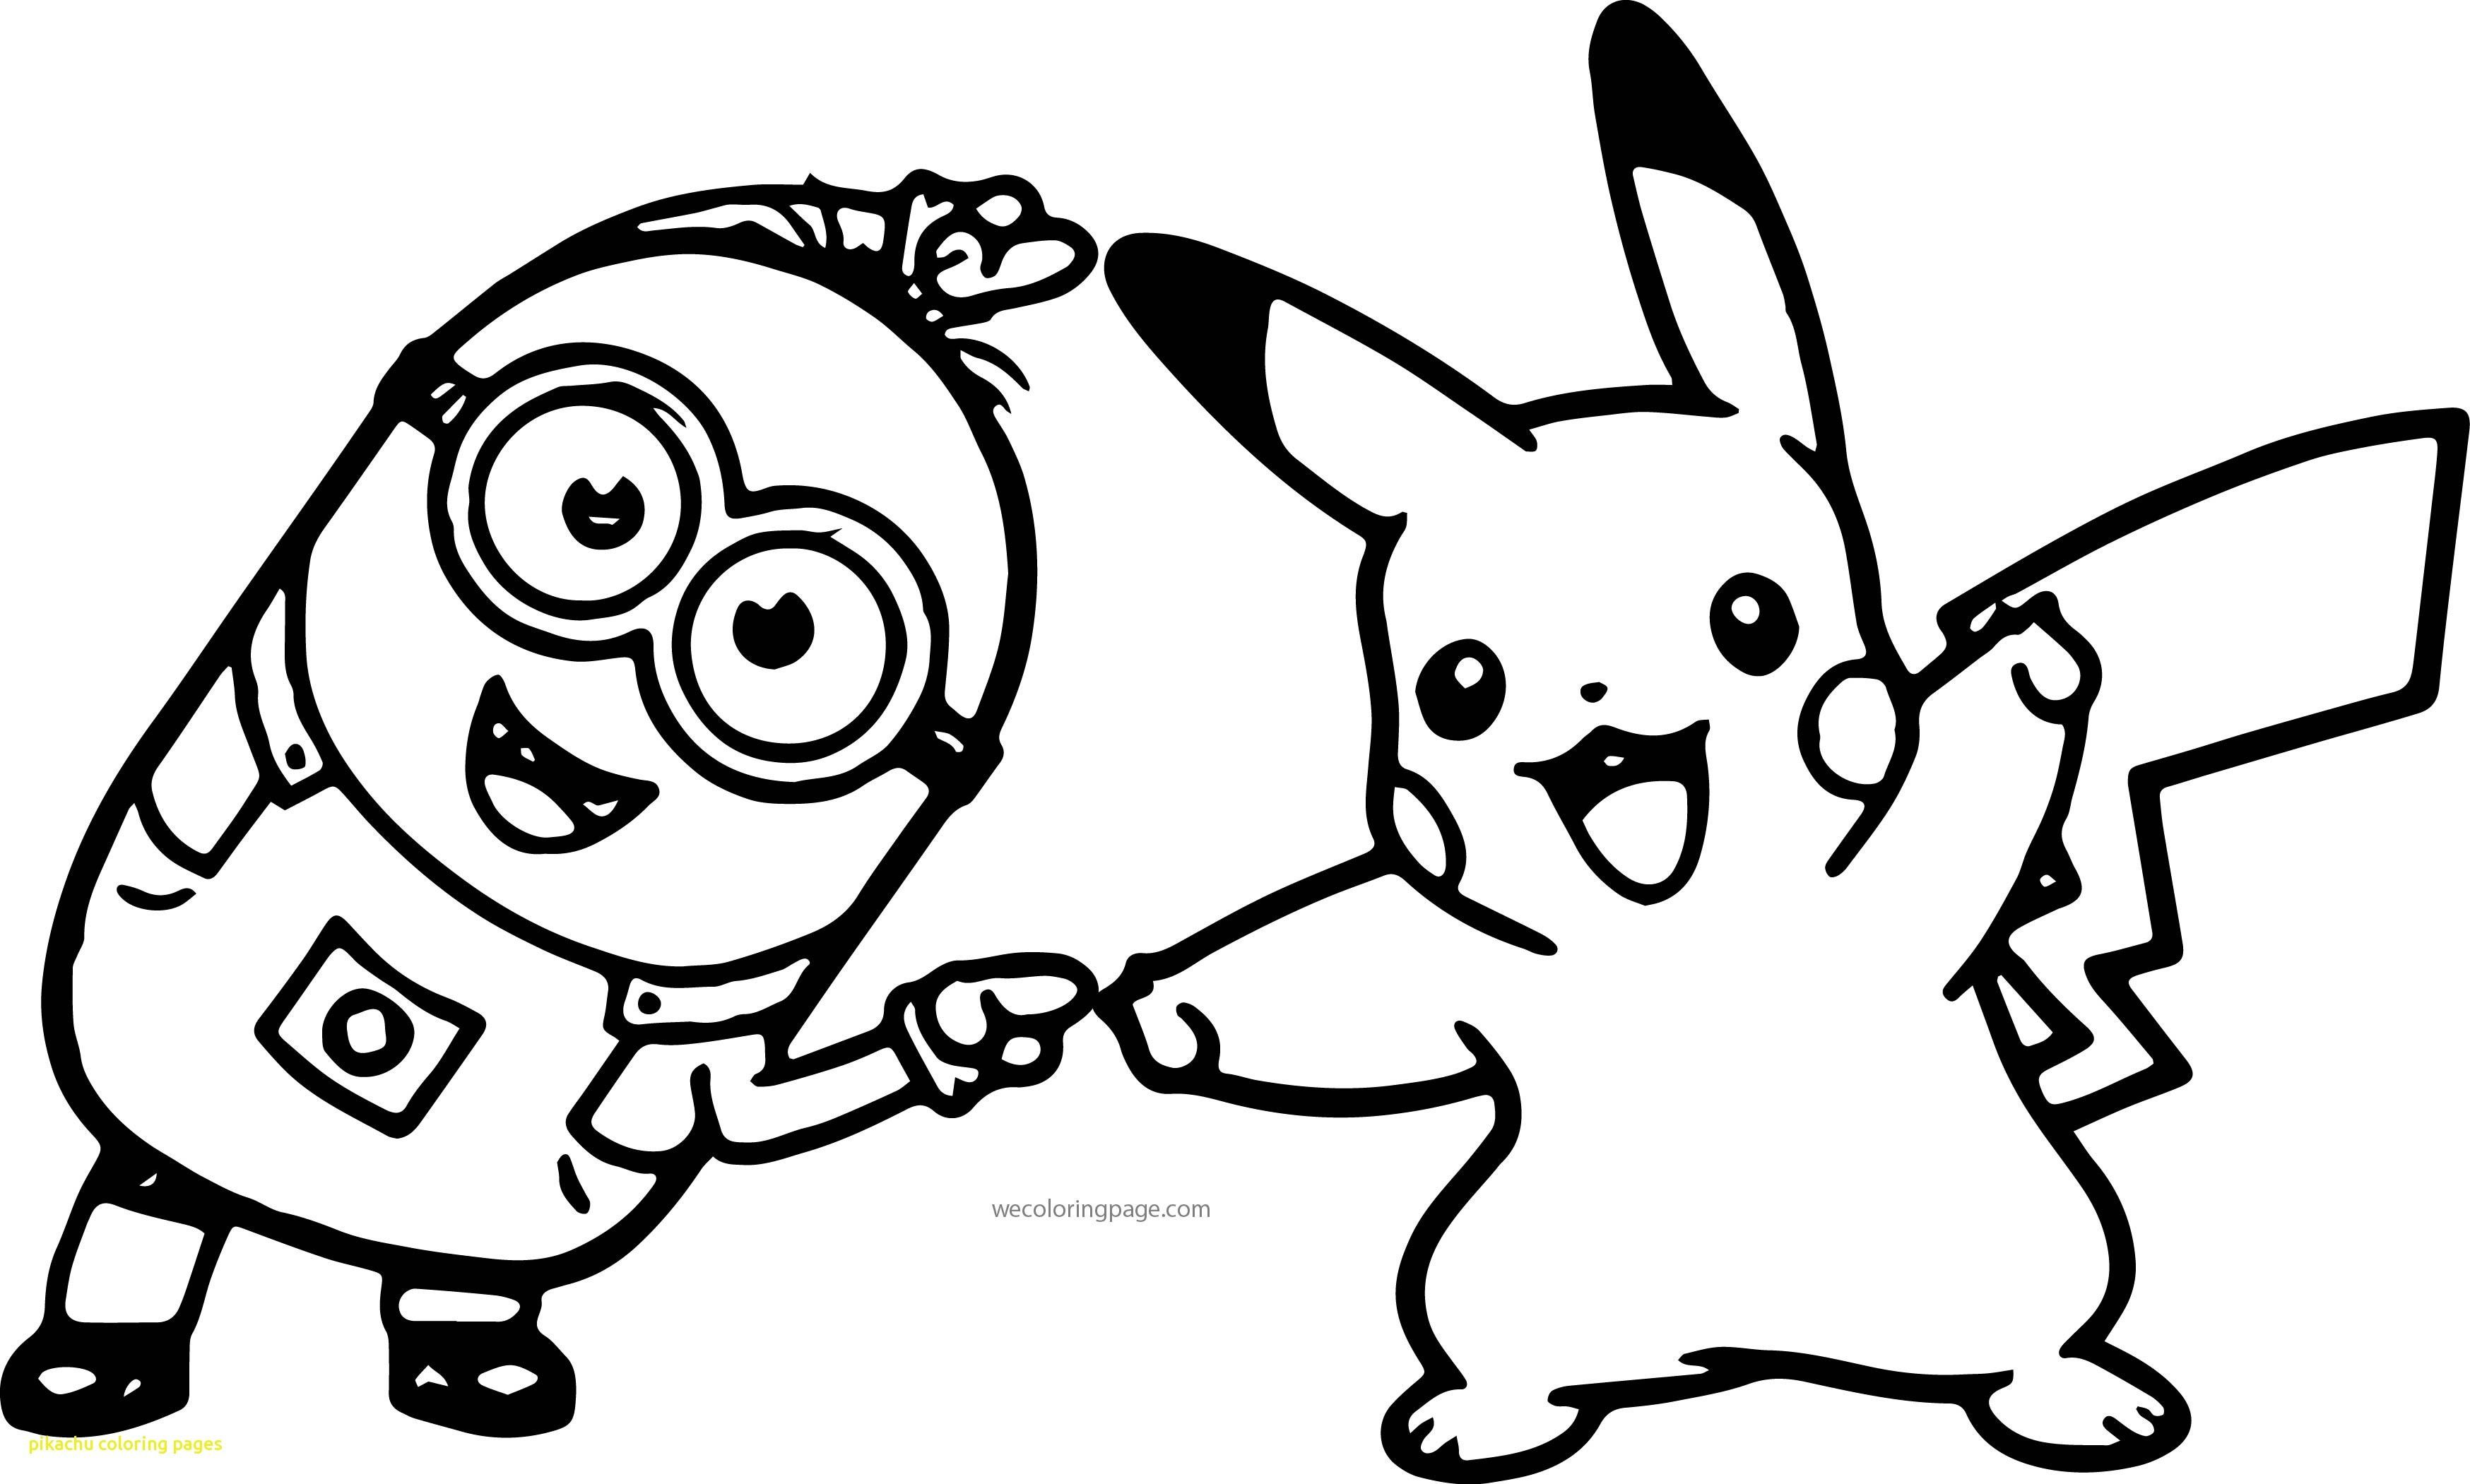 Minion and Pikachu Coloring Page Through the thousand